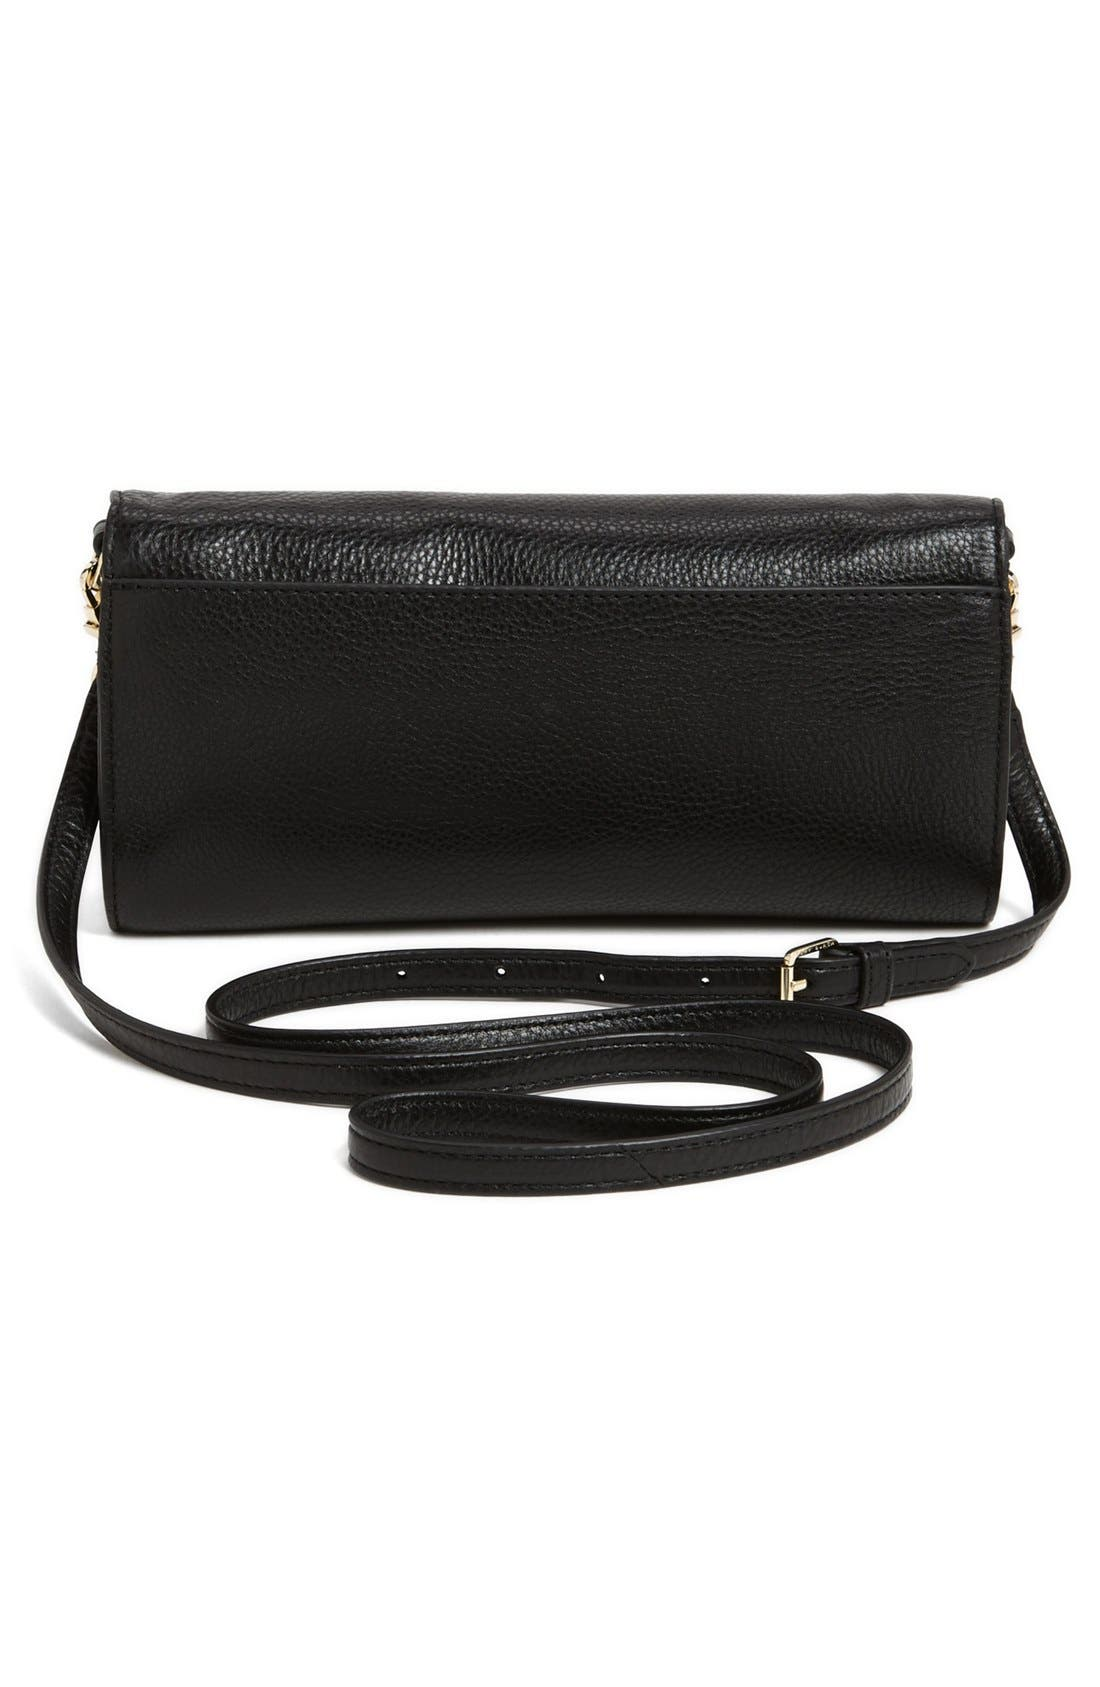 Alternate Image 3  - Tory Burch 'Thea' Foldover Crossbody Clutch